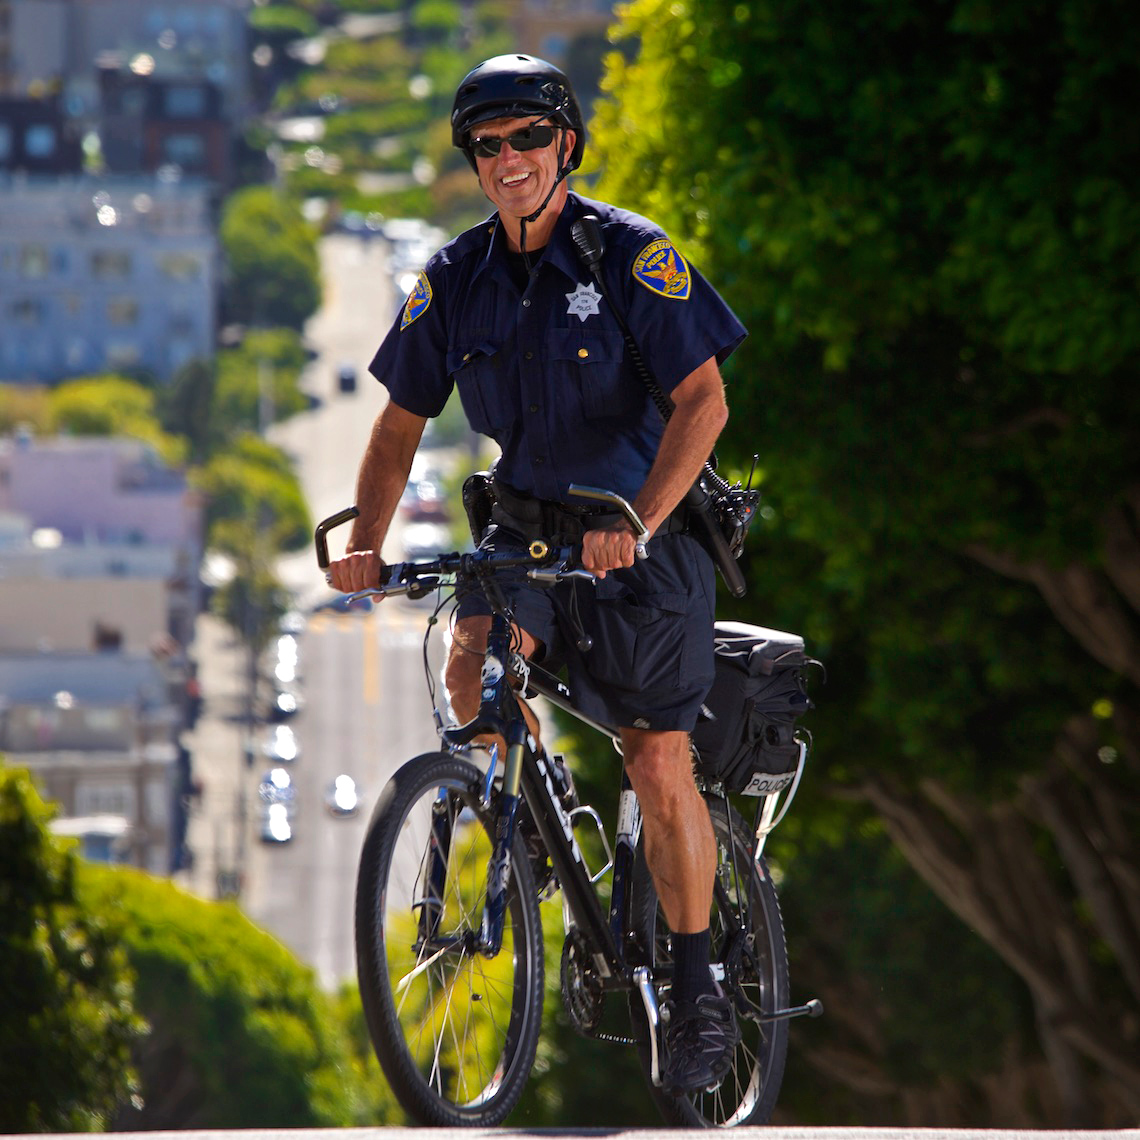 Officer Fred Crisp, SFPD, on Lombard Street